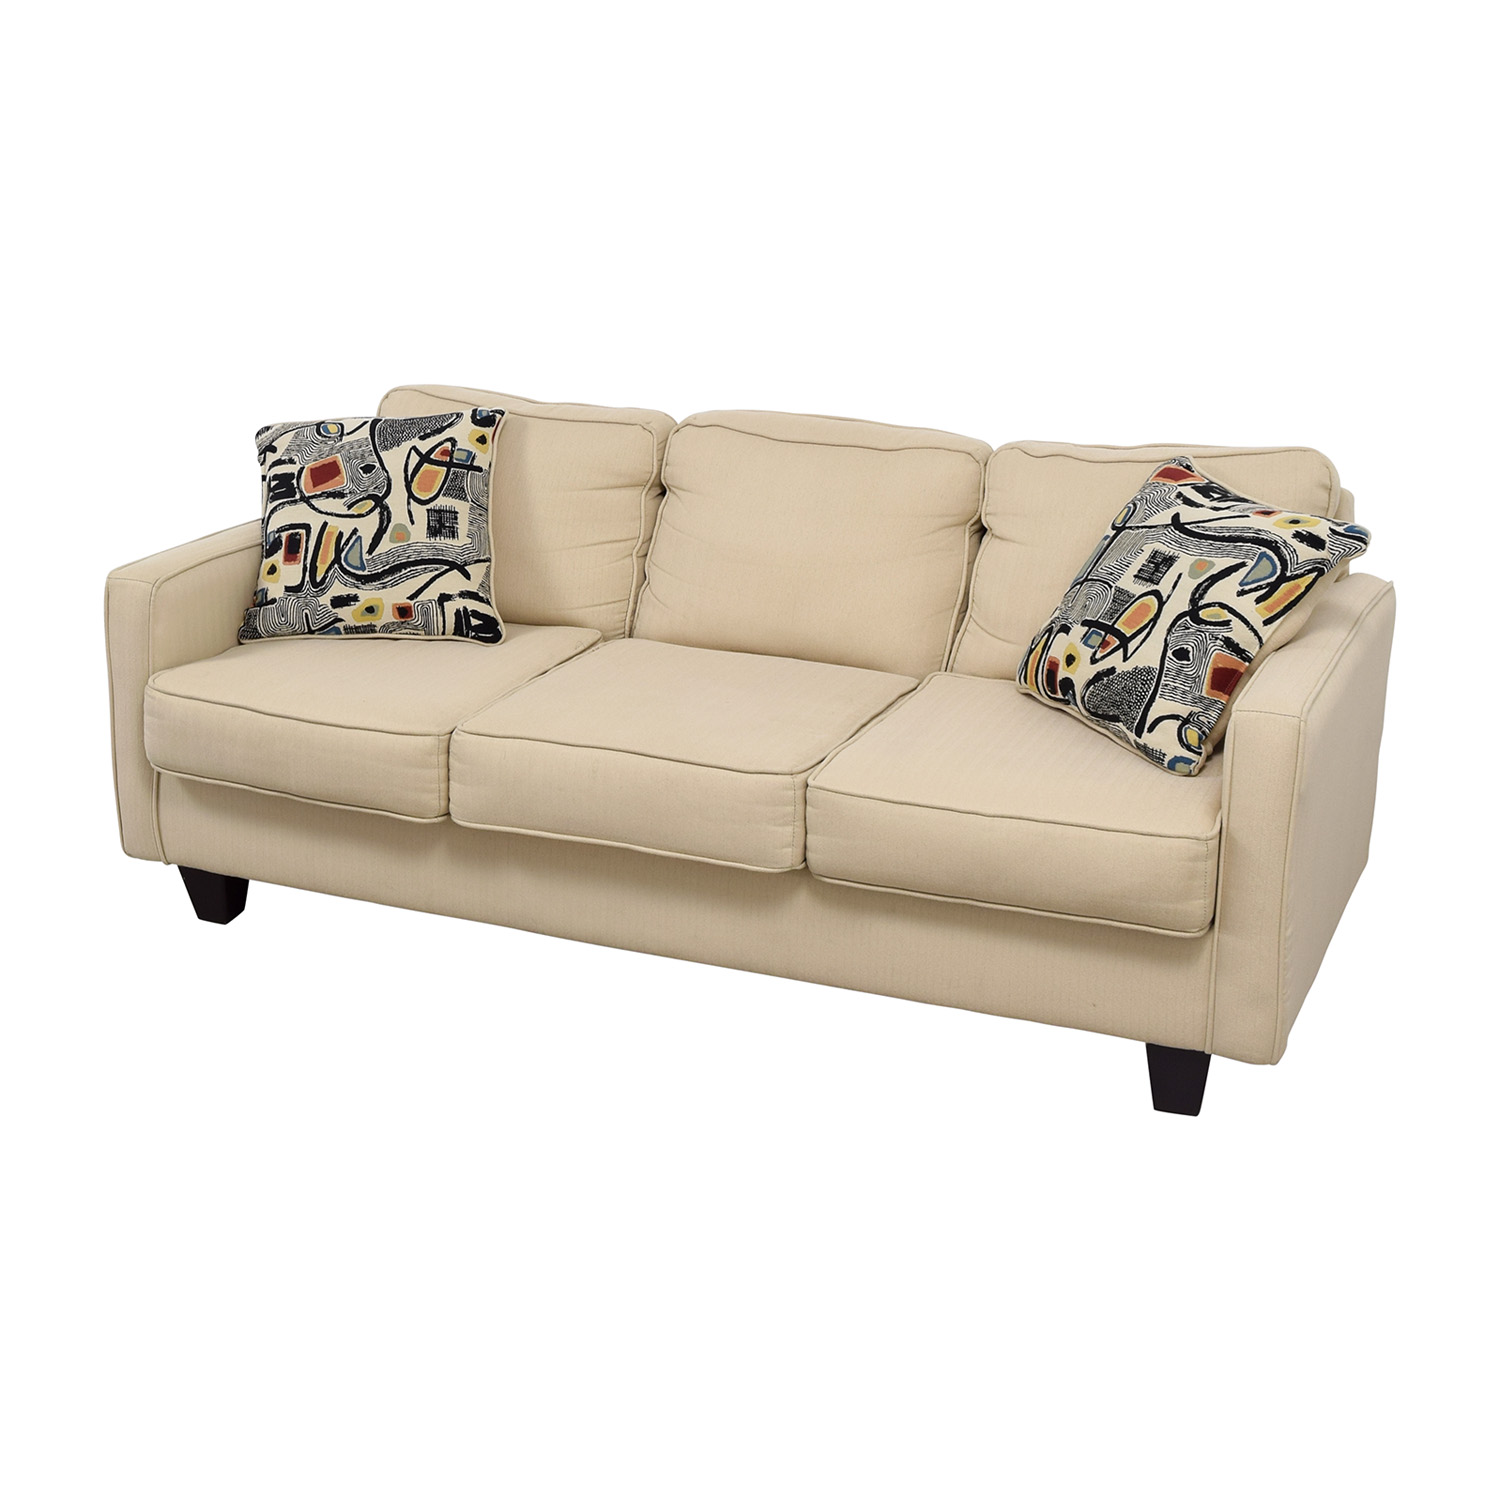 sofa online shop classic sectional sofa pink fabric l shaped exclusive regarding decor seater. Black Bedroom Furniture Sets. Home Design Ideas